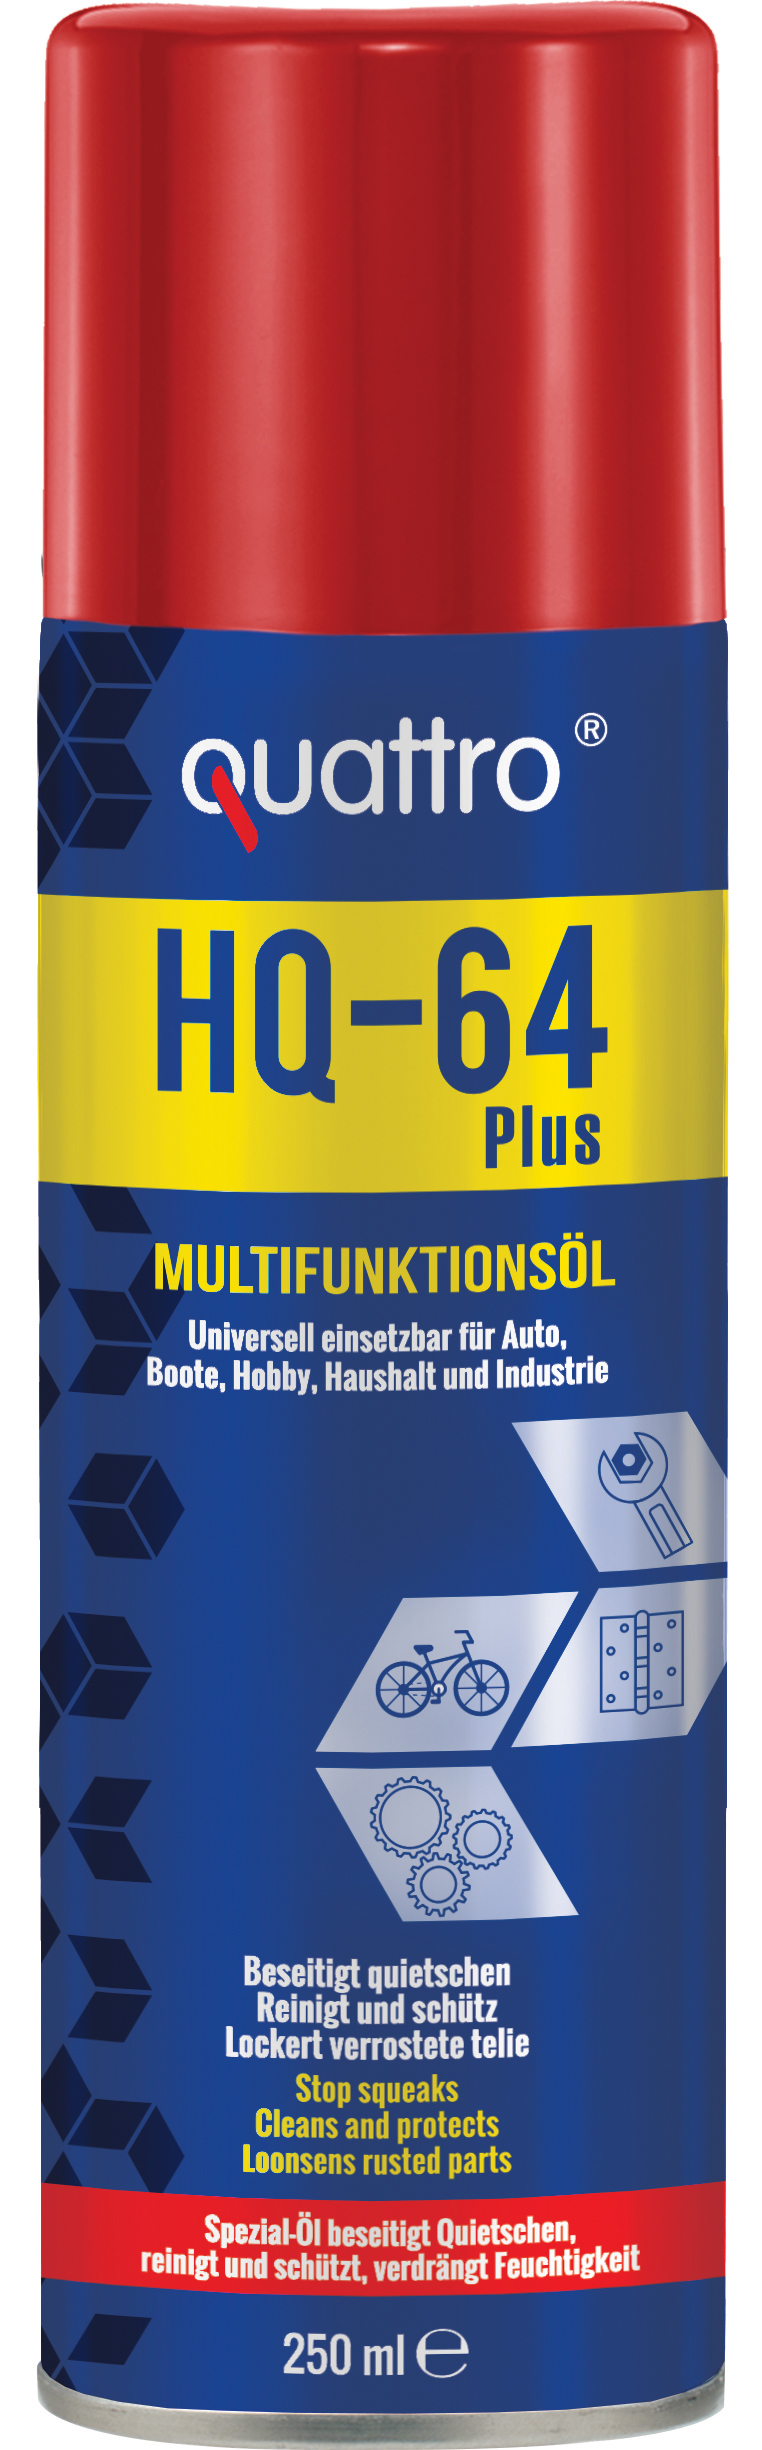 00716 - quattro Multifunktionsöl HQ-64 Plus 250 ml